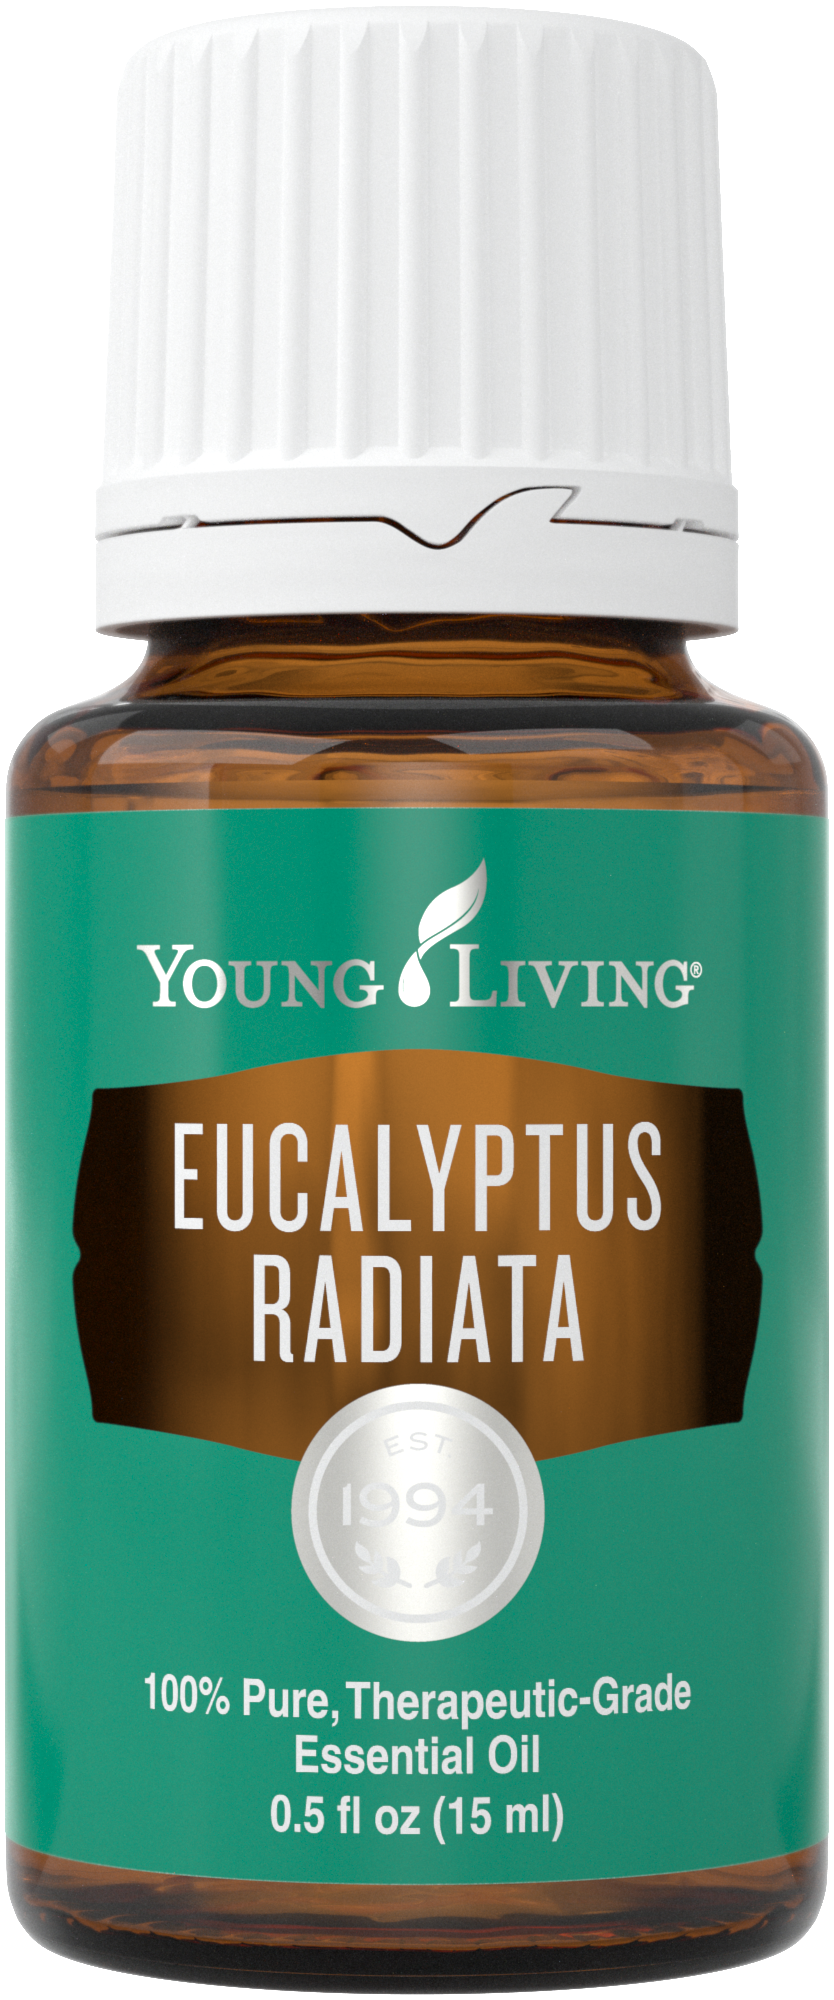 Eucalyptus Radiata essential oil uses | Young Living